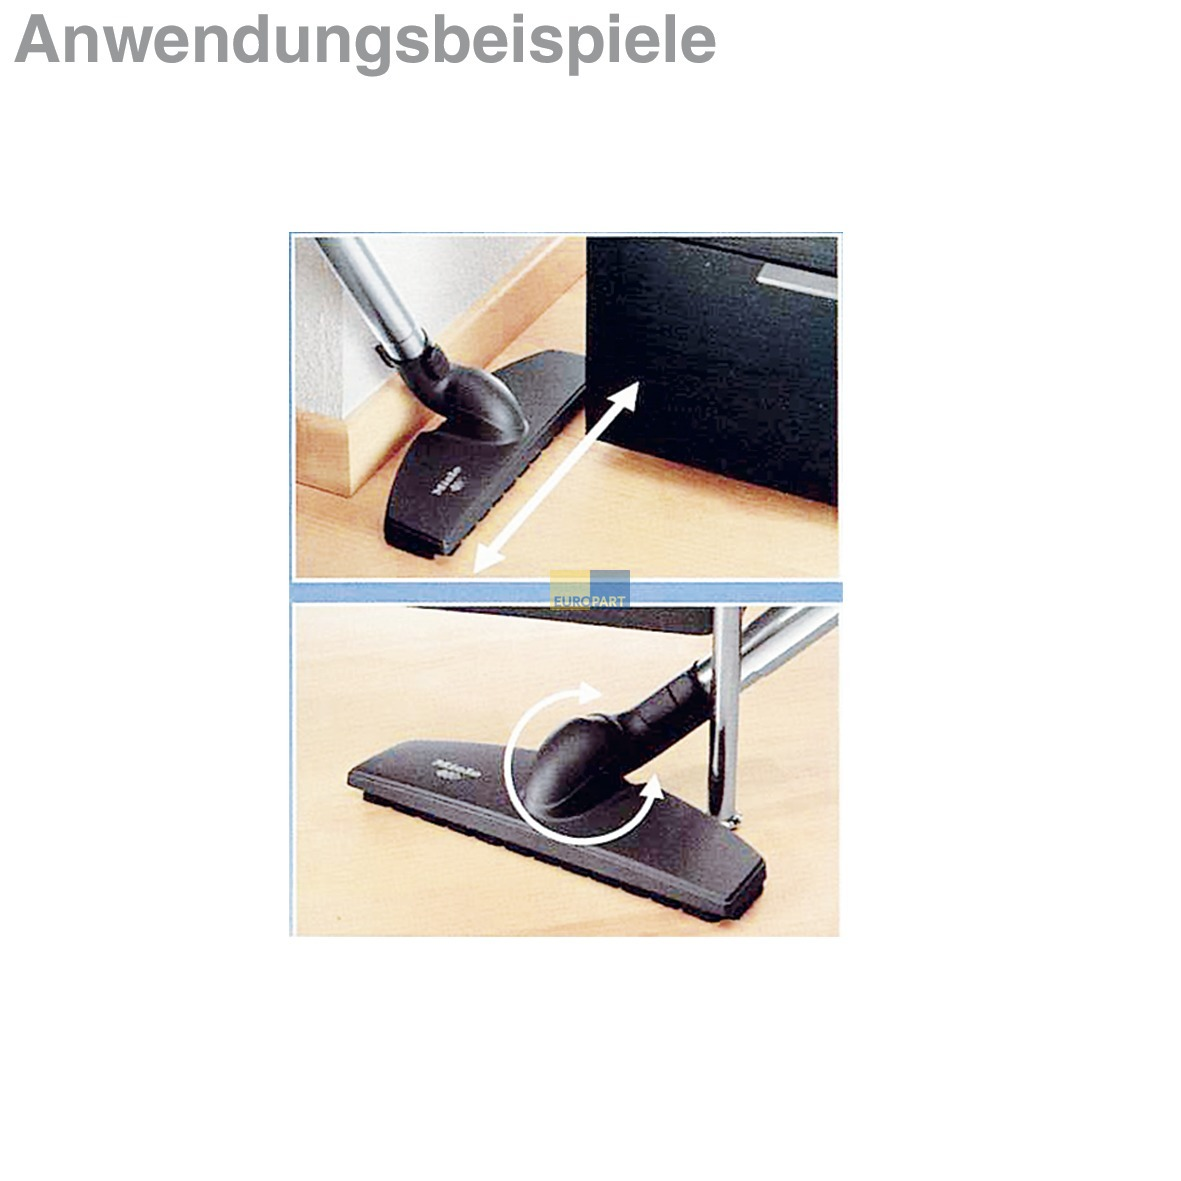 Staubsaugerbeutel plus 1 HEPA Filter passend für Miele Young Style S4210 S4211